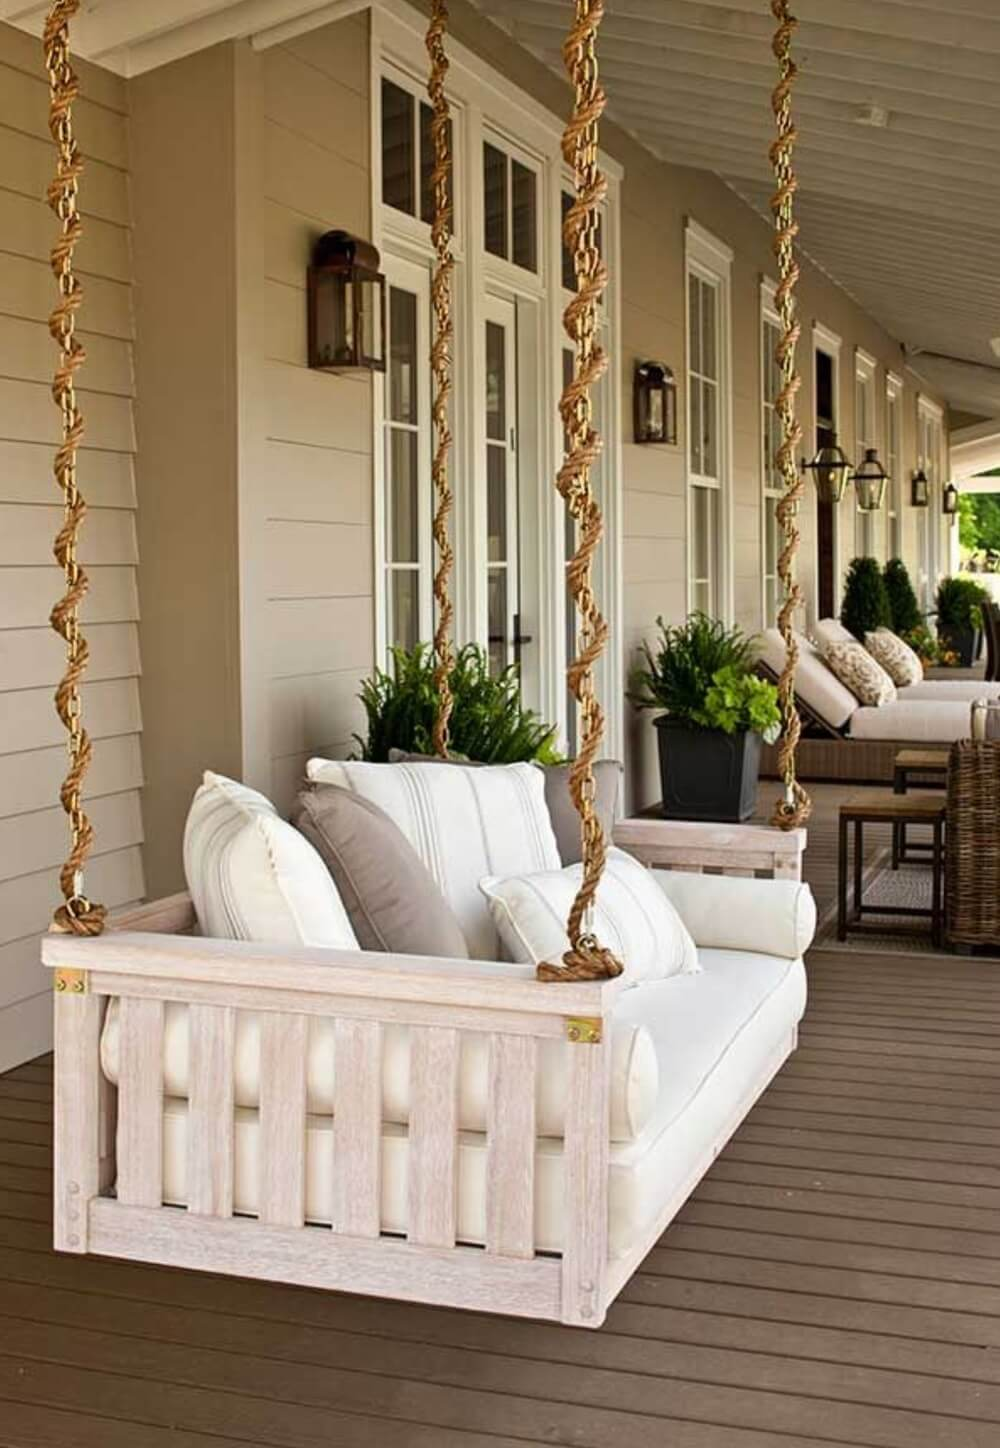 Bed-To-Porch Suspended Swing